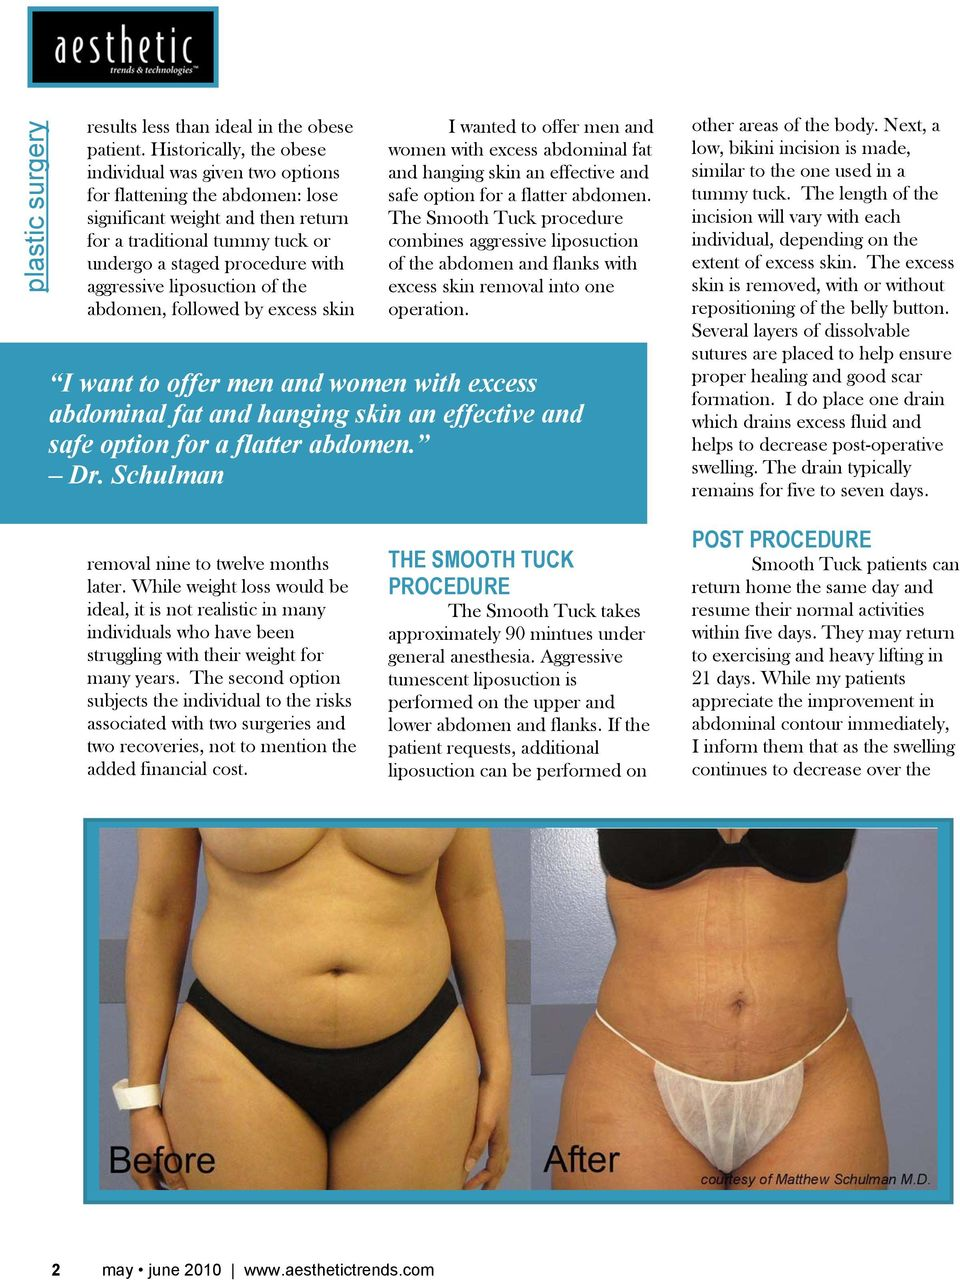 liposuction of the abdomen, followed by excess skin I wanted to offer men and women with excess abdominal fat and hanging skin an effective and safe option for a flatter abdomen.